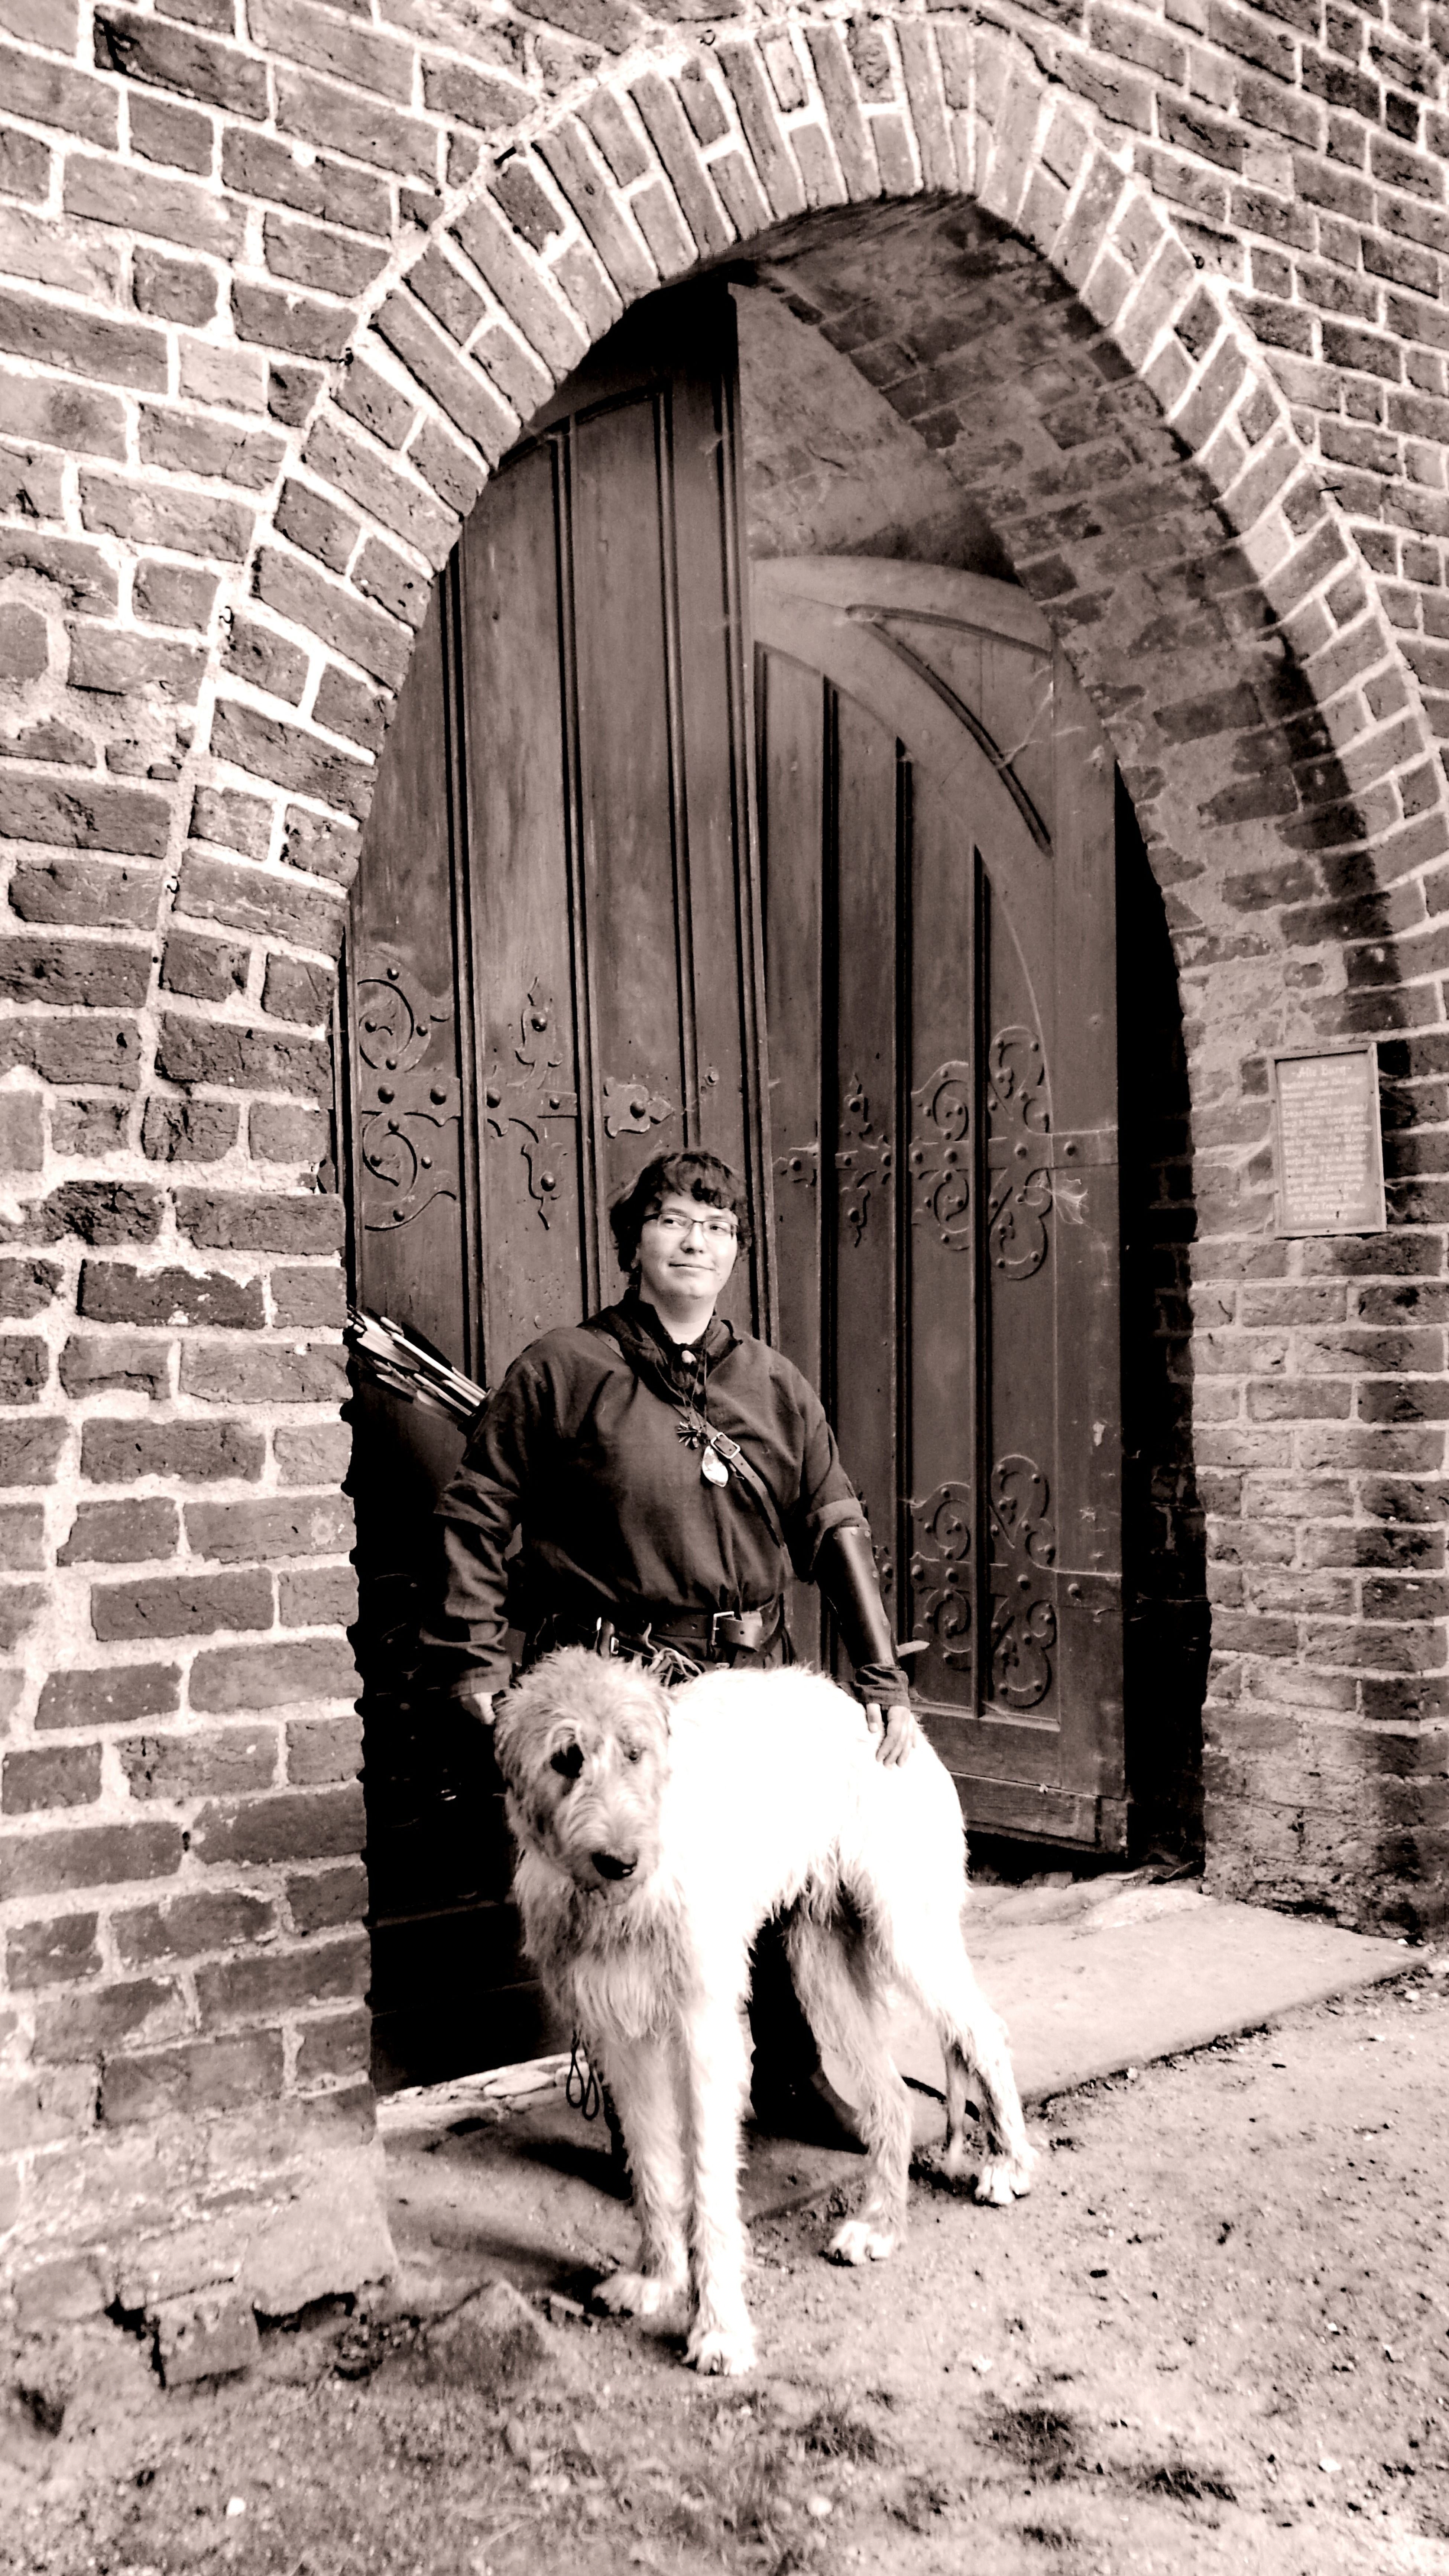 Summer ☀ Show Me Your Sepia Monochrome The Places ı've Been Today Showcase September Altmark Cearnaigh Irish Wolfhound Dogwalk Dogslife Dogs Of EyeEm Dog Of The Day Dog Of My Life Dogs Of Summer That's Me Hello World Medieval Dog Castle Doorway